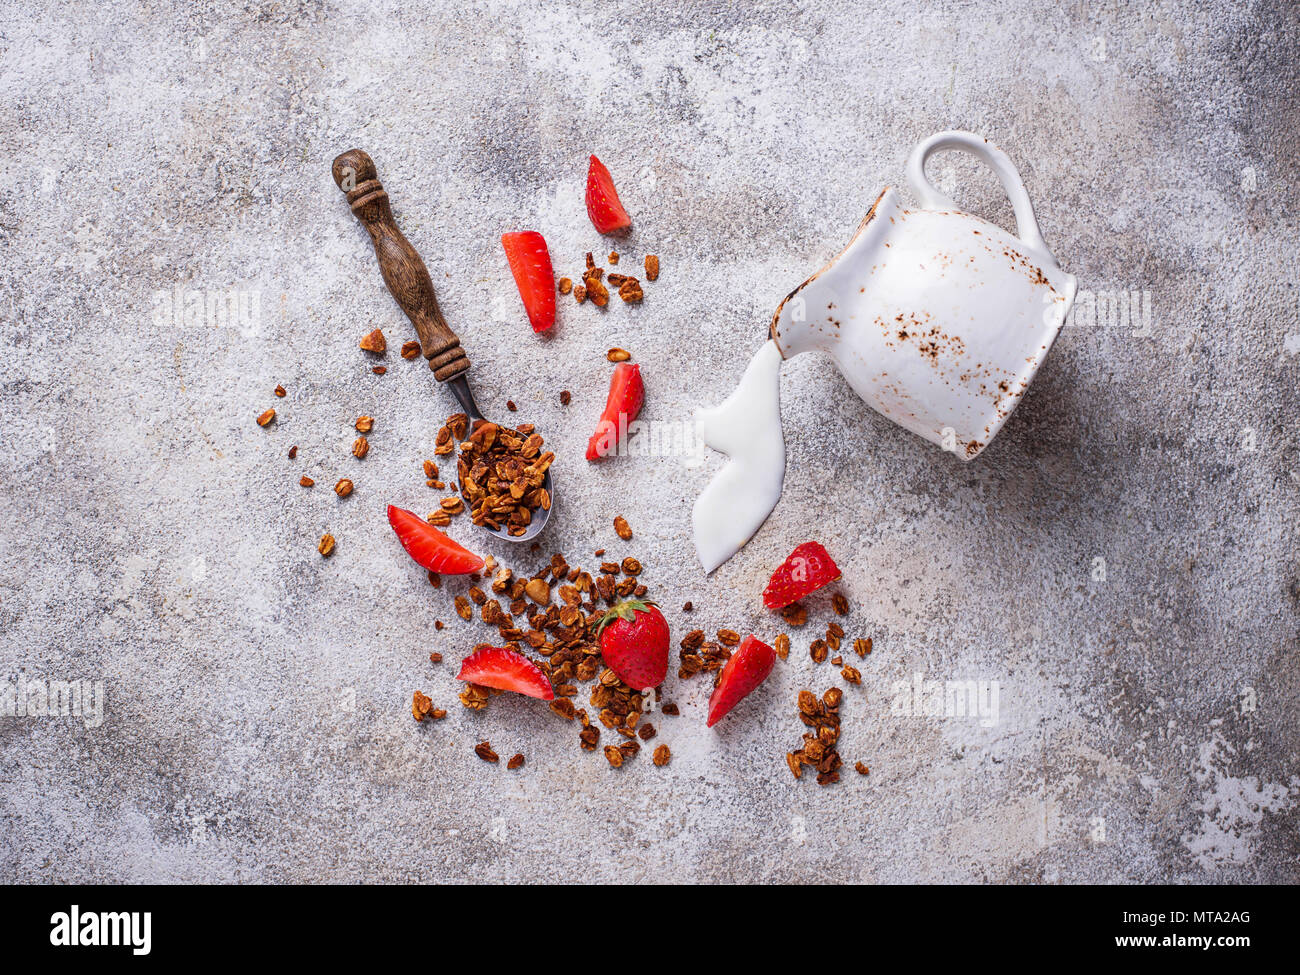 Granola and strawberry, healthy breakfast  - Stock Image